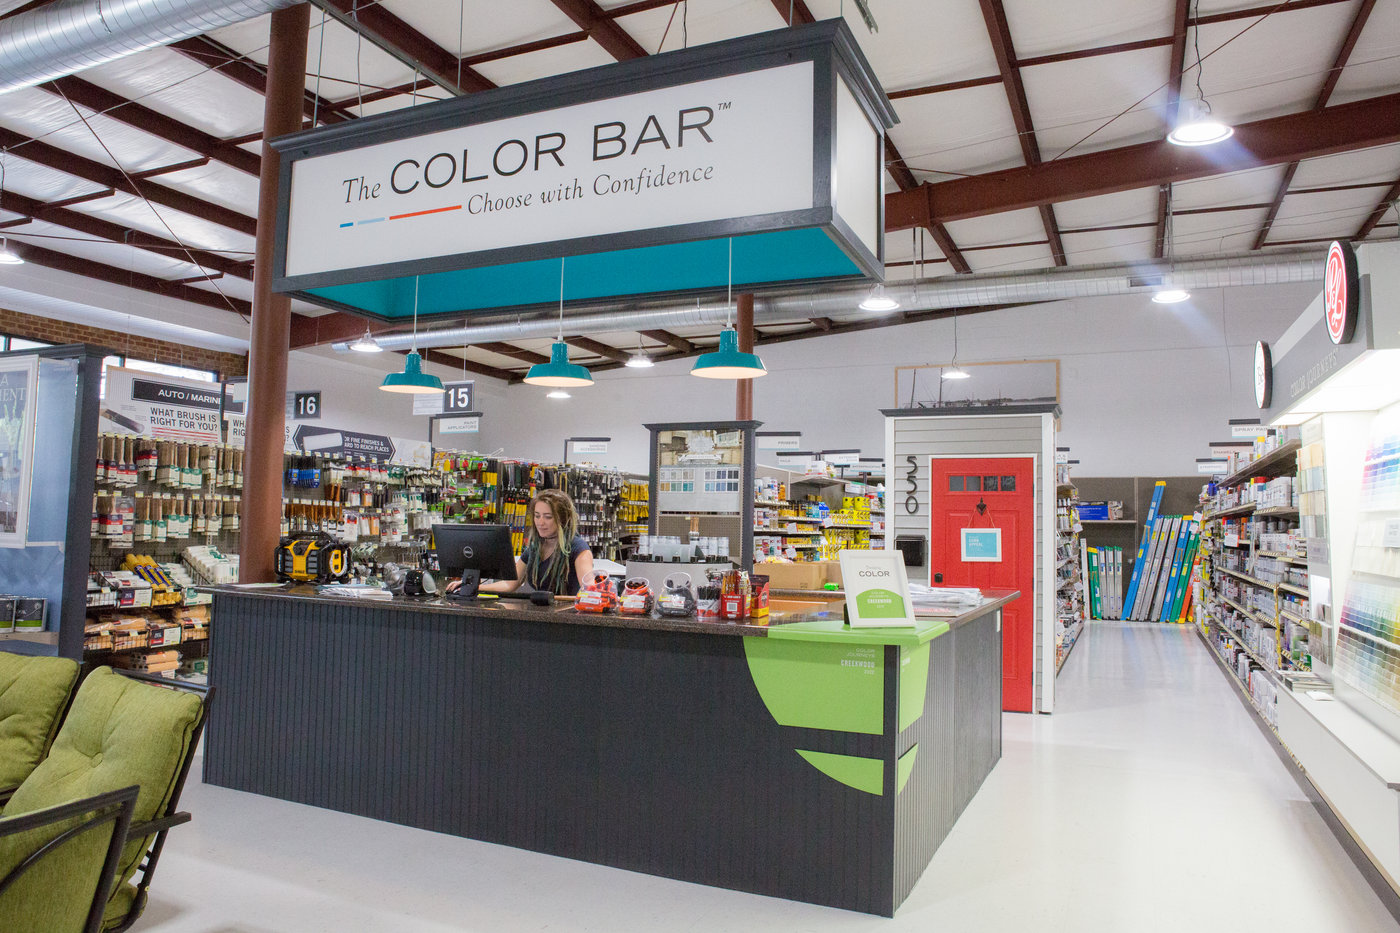 Adopting The Color Bar paint department has led to strong sales in paint.